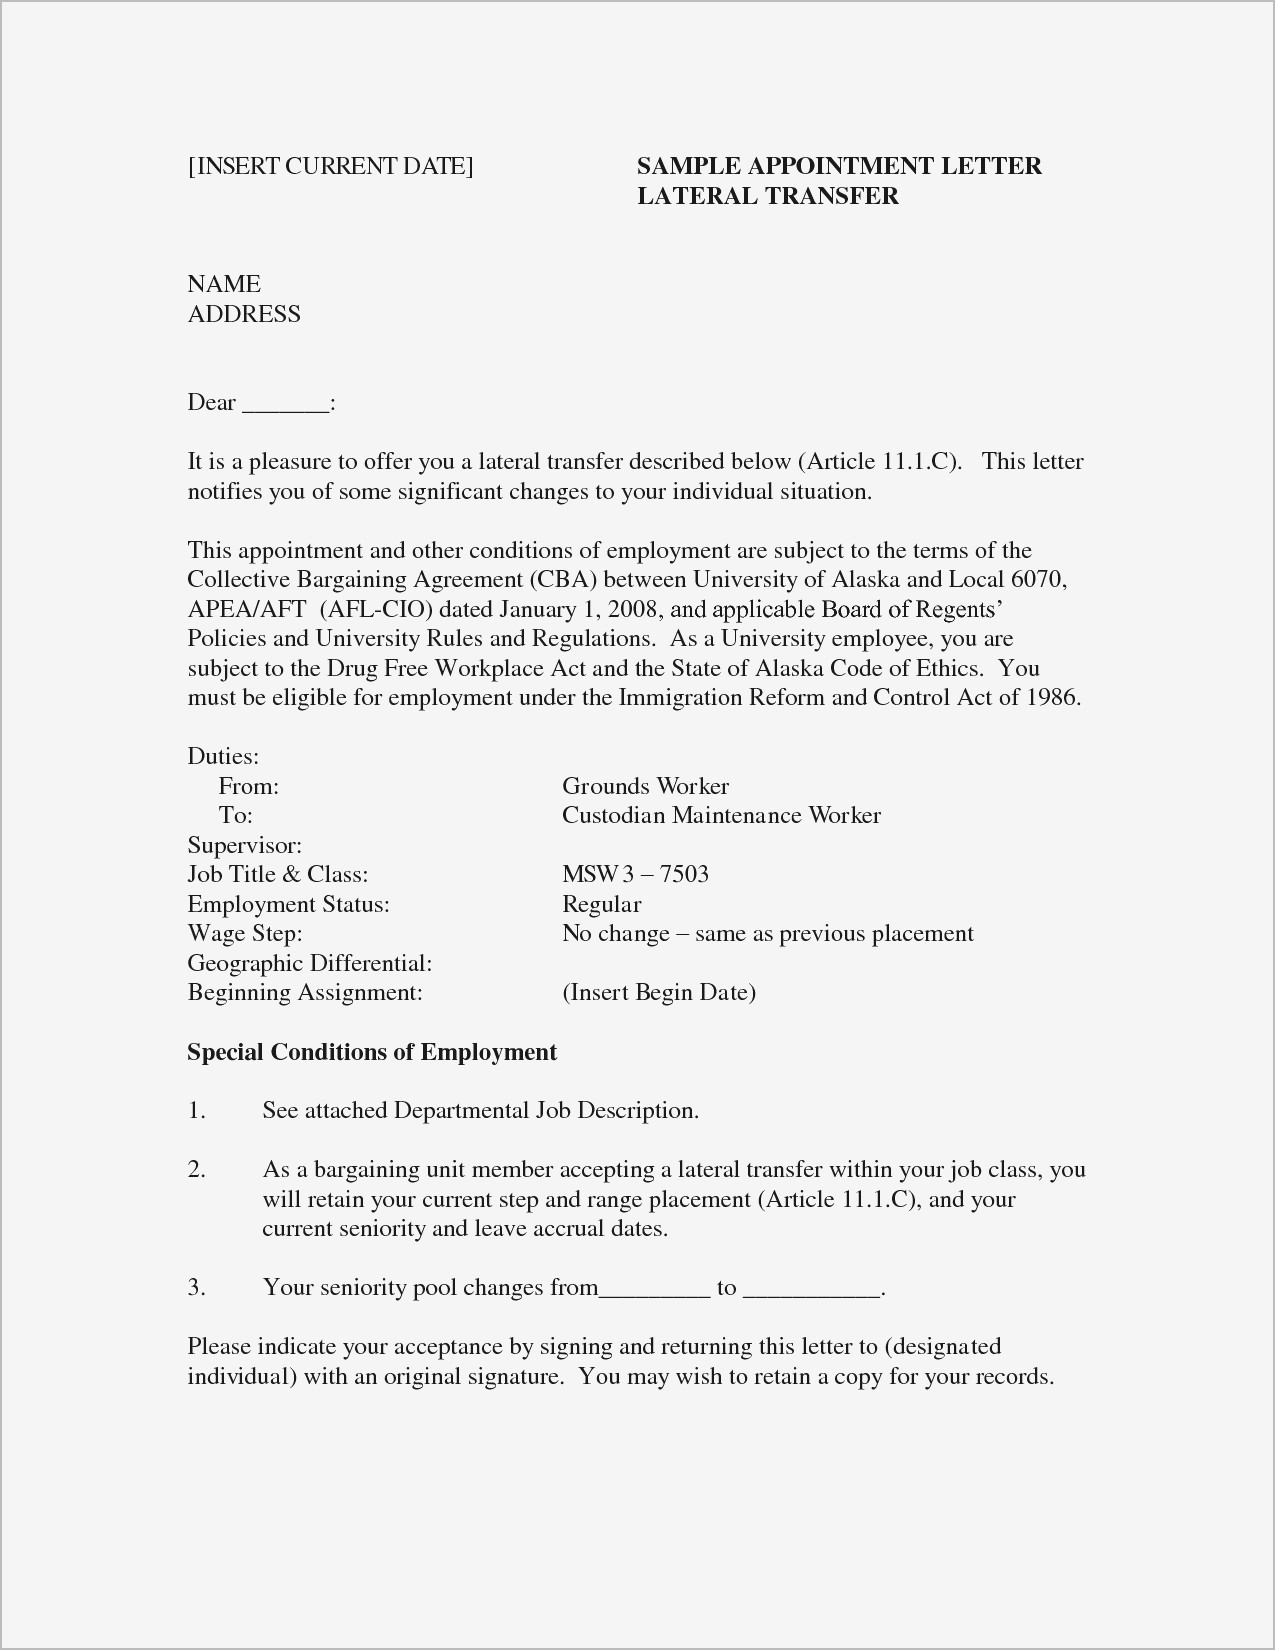 letter outline template example-Cover Letter Template Word 2014 Fresh Relocation Cover Letters Od Specialist Sample Resume Portfolio 10-t